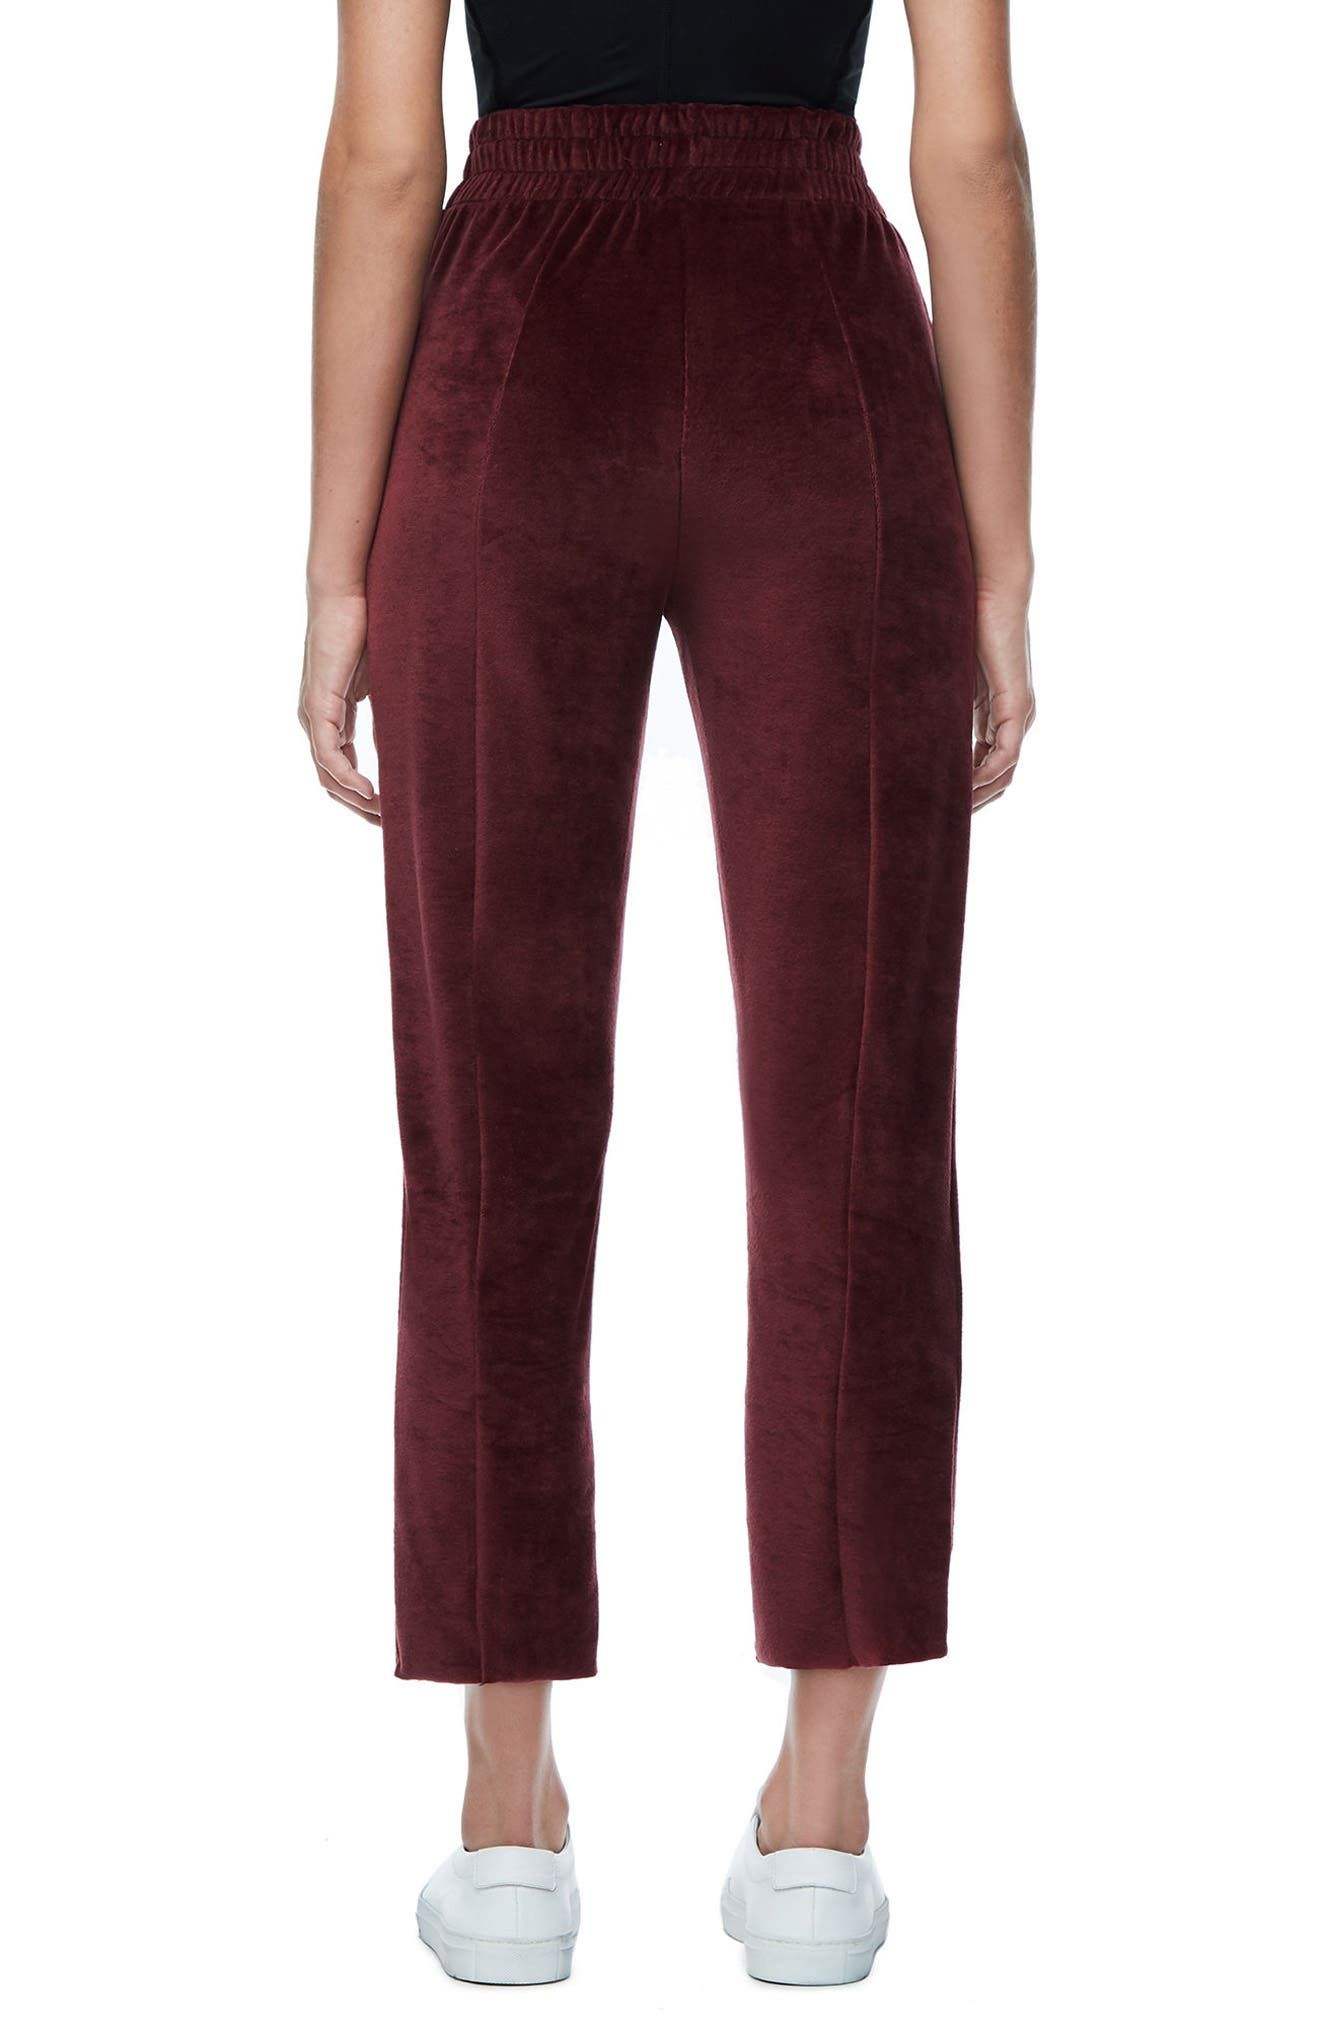 Alternate Image 2  - Good American Good Sweats The High Waist Sweatpants (Extended Sizes)